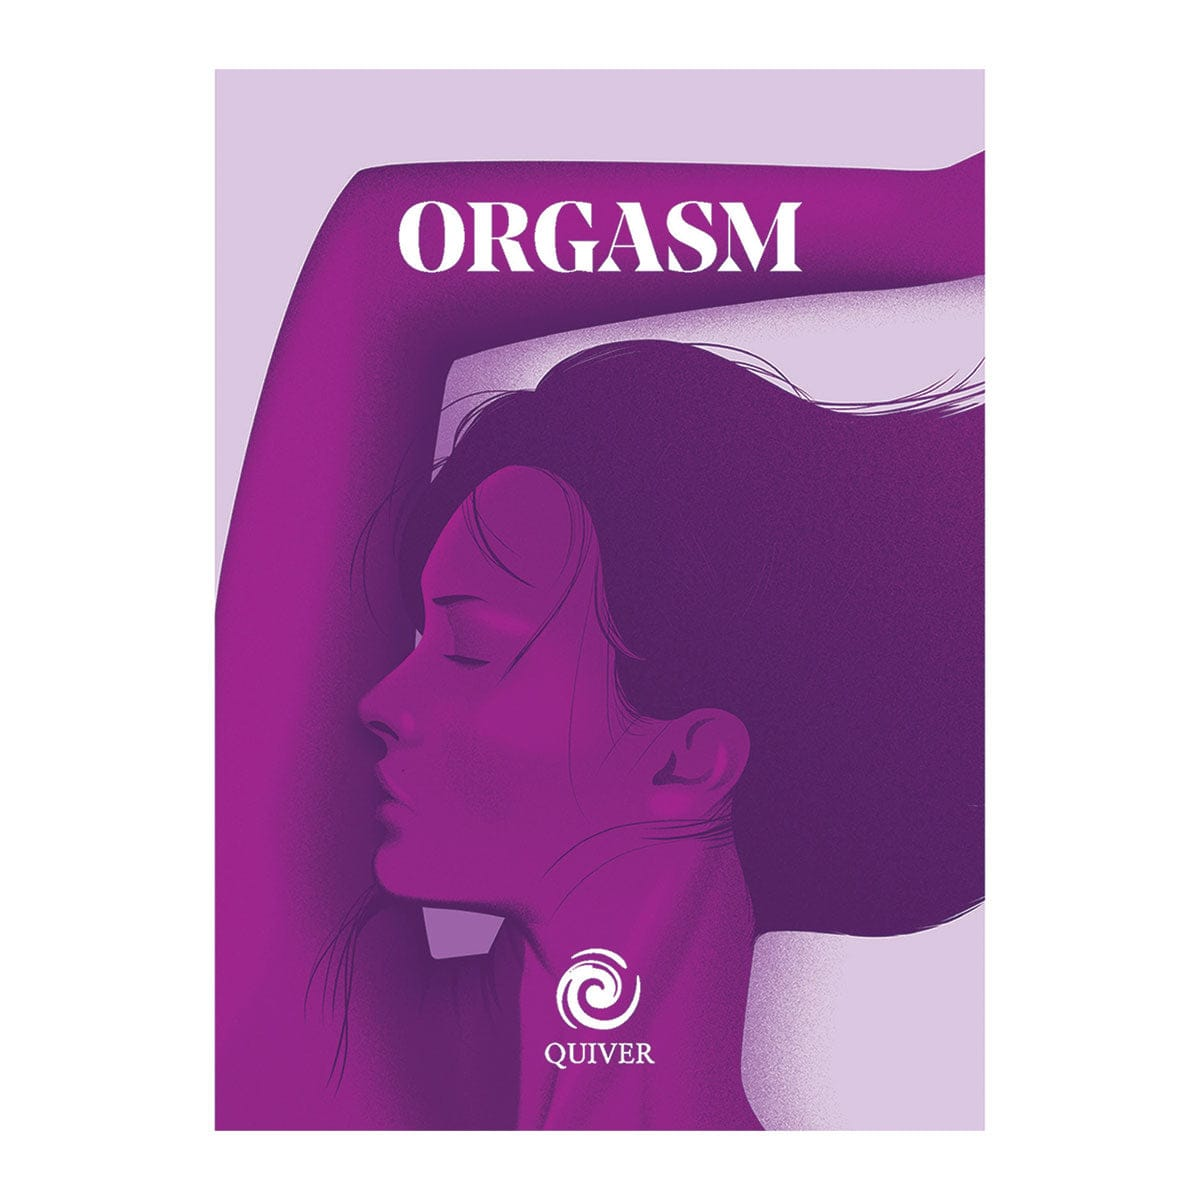 Orgasm Mini Book by Quiver - rolik